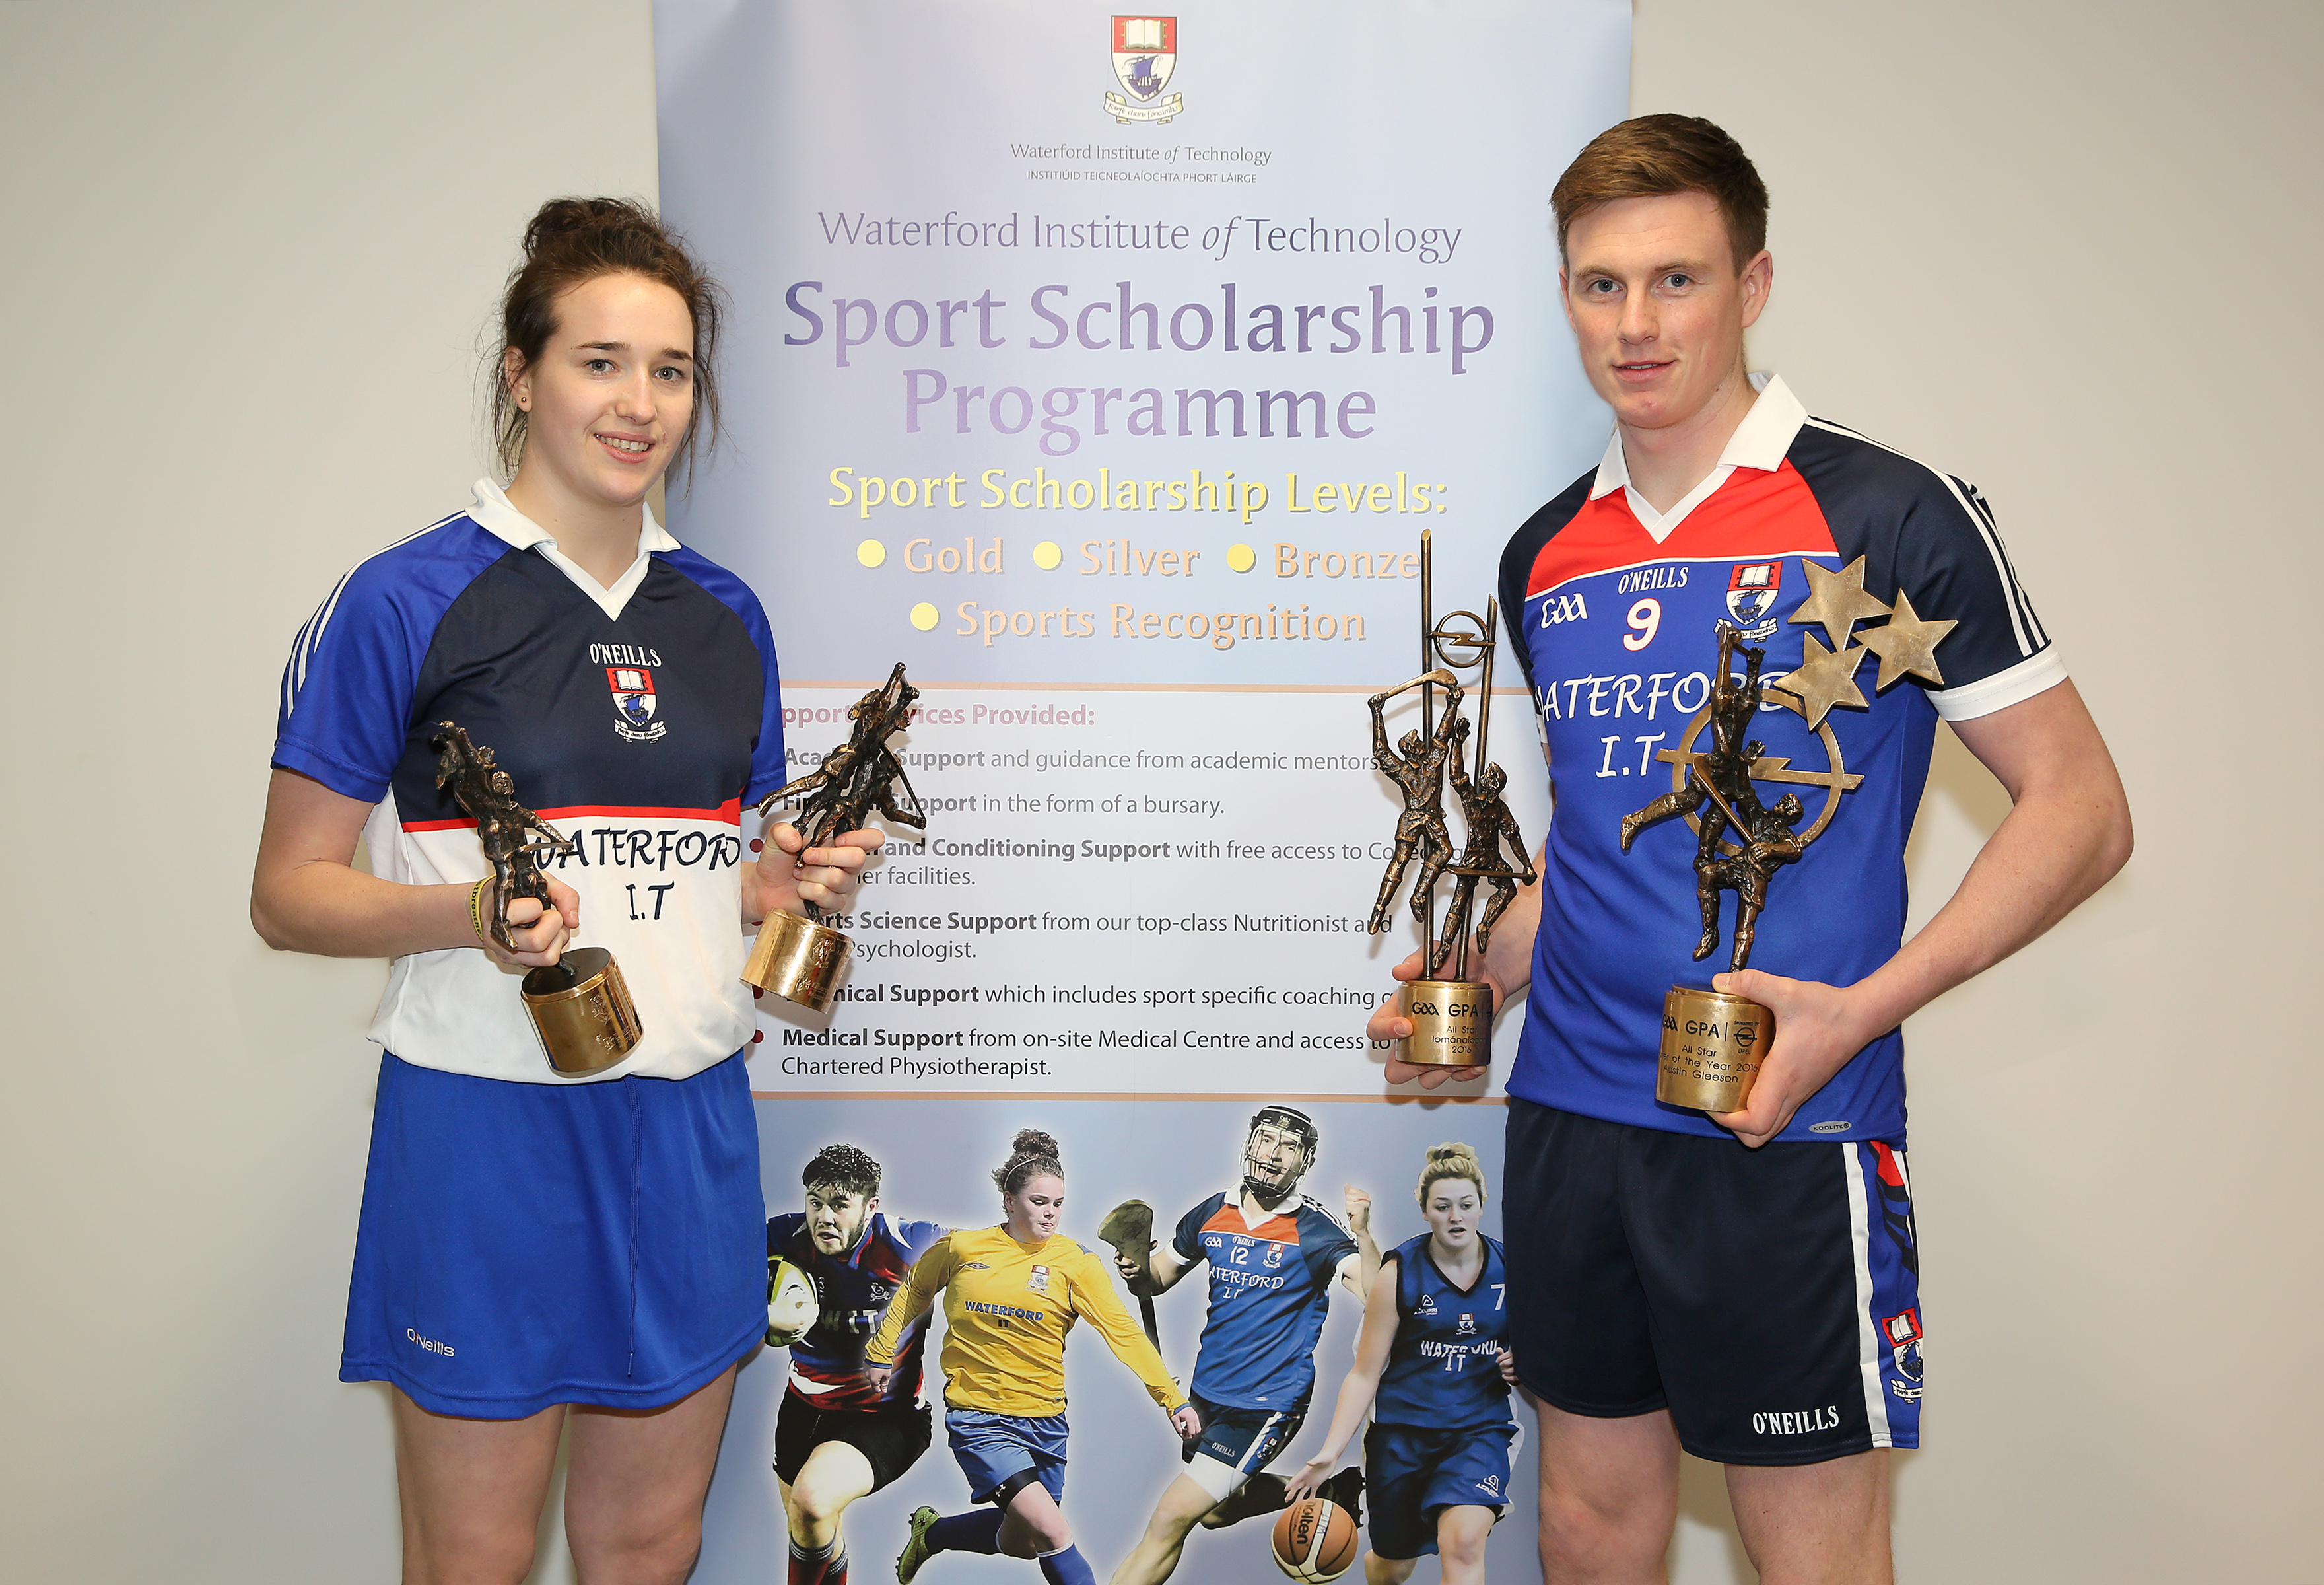 WIT Sports Scholarship student and 2016 Senior Hurling Player of the Year Austin Gleeson along with Camogie Player of the Year Denise Gaule